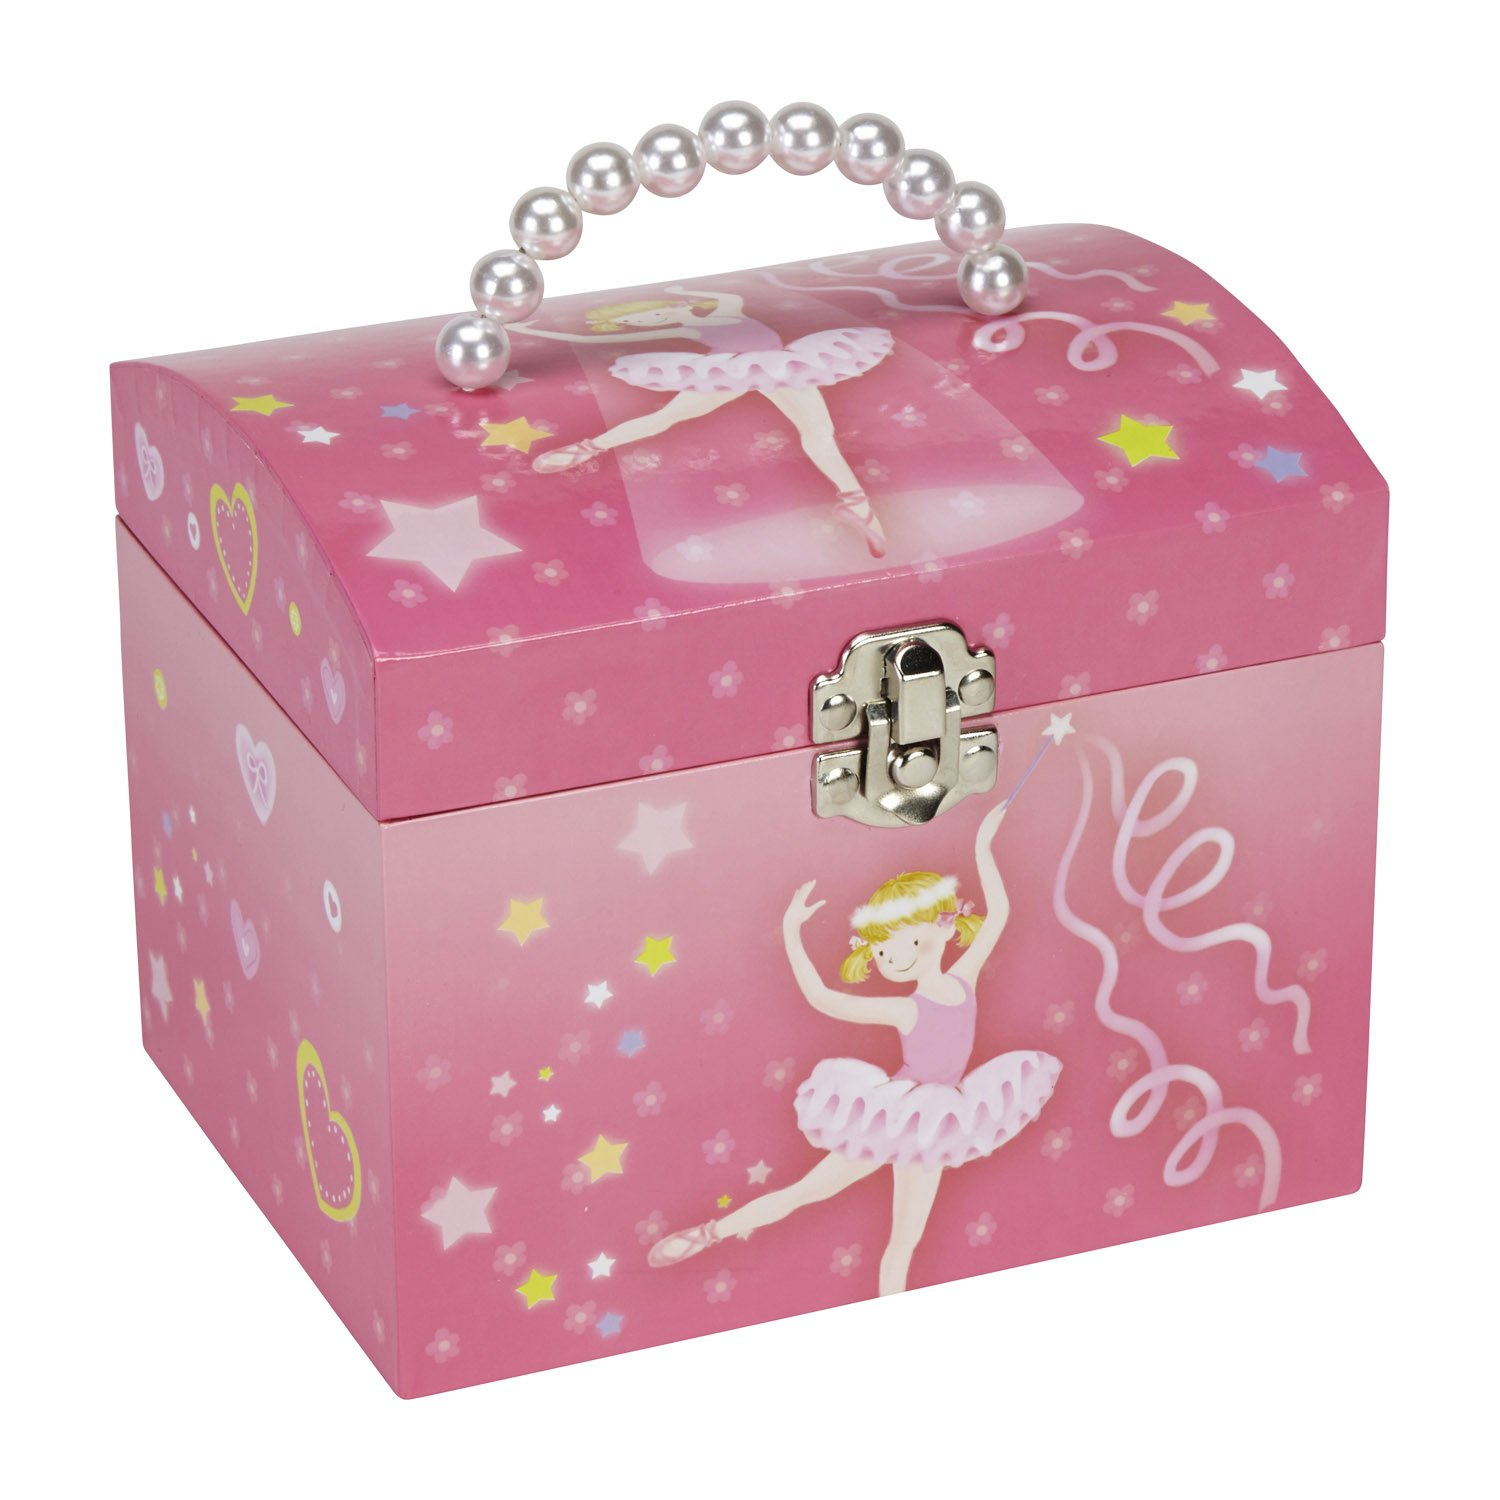 JewelKeeper Dancing Ballerina Music Jewelry Box with Pearl Handle and Removable Insert, Girl's Jewel Storage Organizer, Swan Lake Tune by JewelKeeper